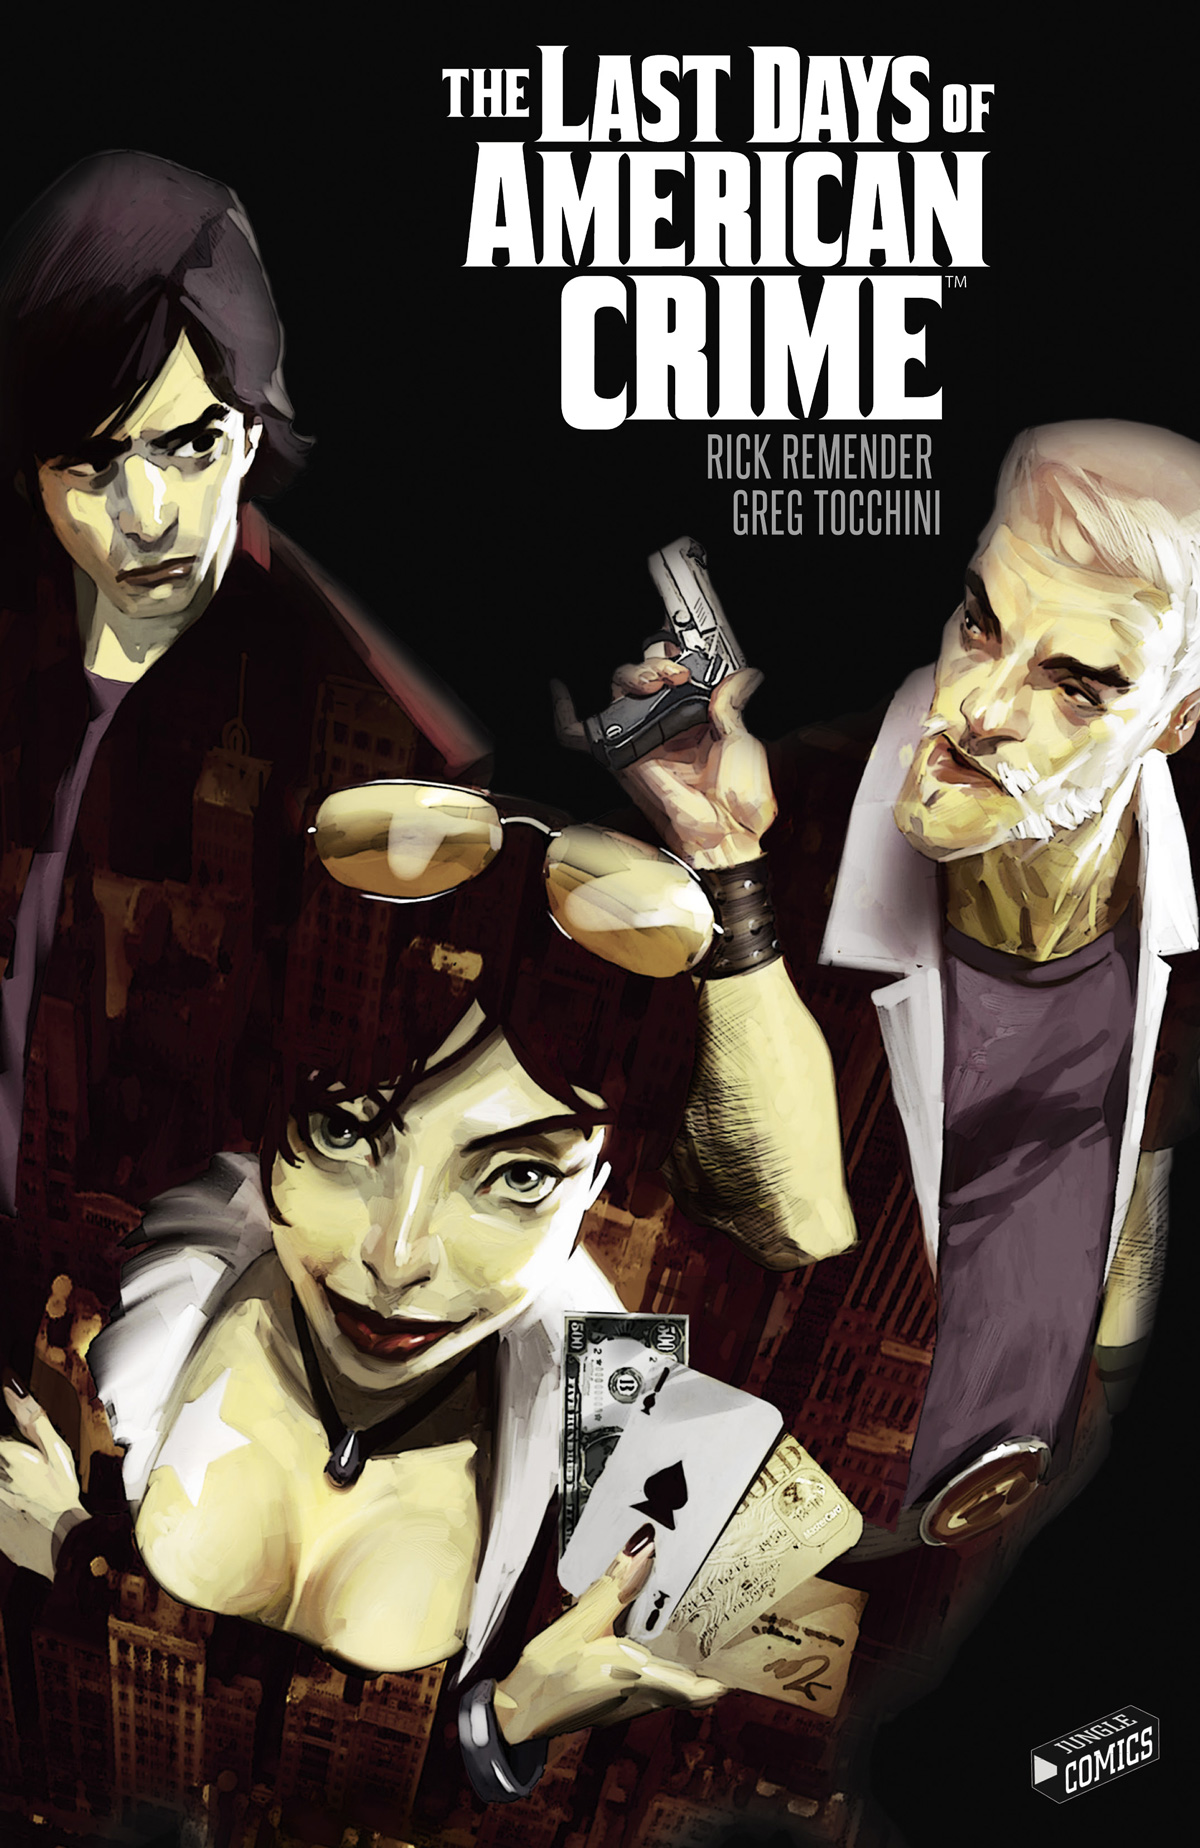 https://www.mdcu-comics.fr/upload/comics/covers/fr/img_comics_10753_the-last-days-of-american-crime-integrale.jpg?1551221746